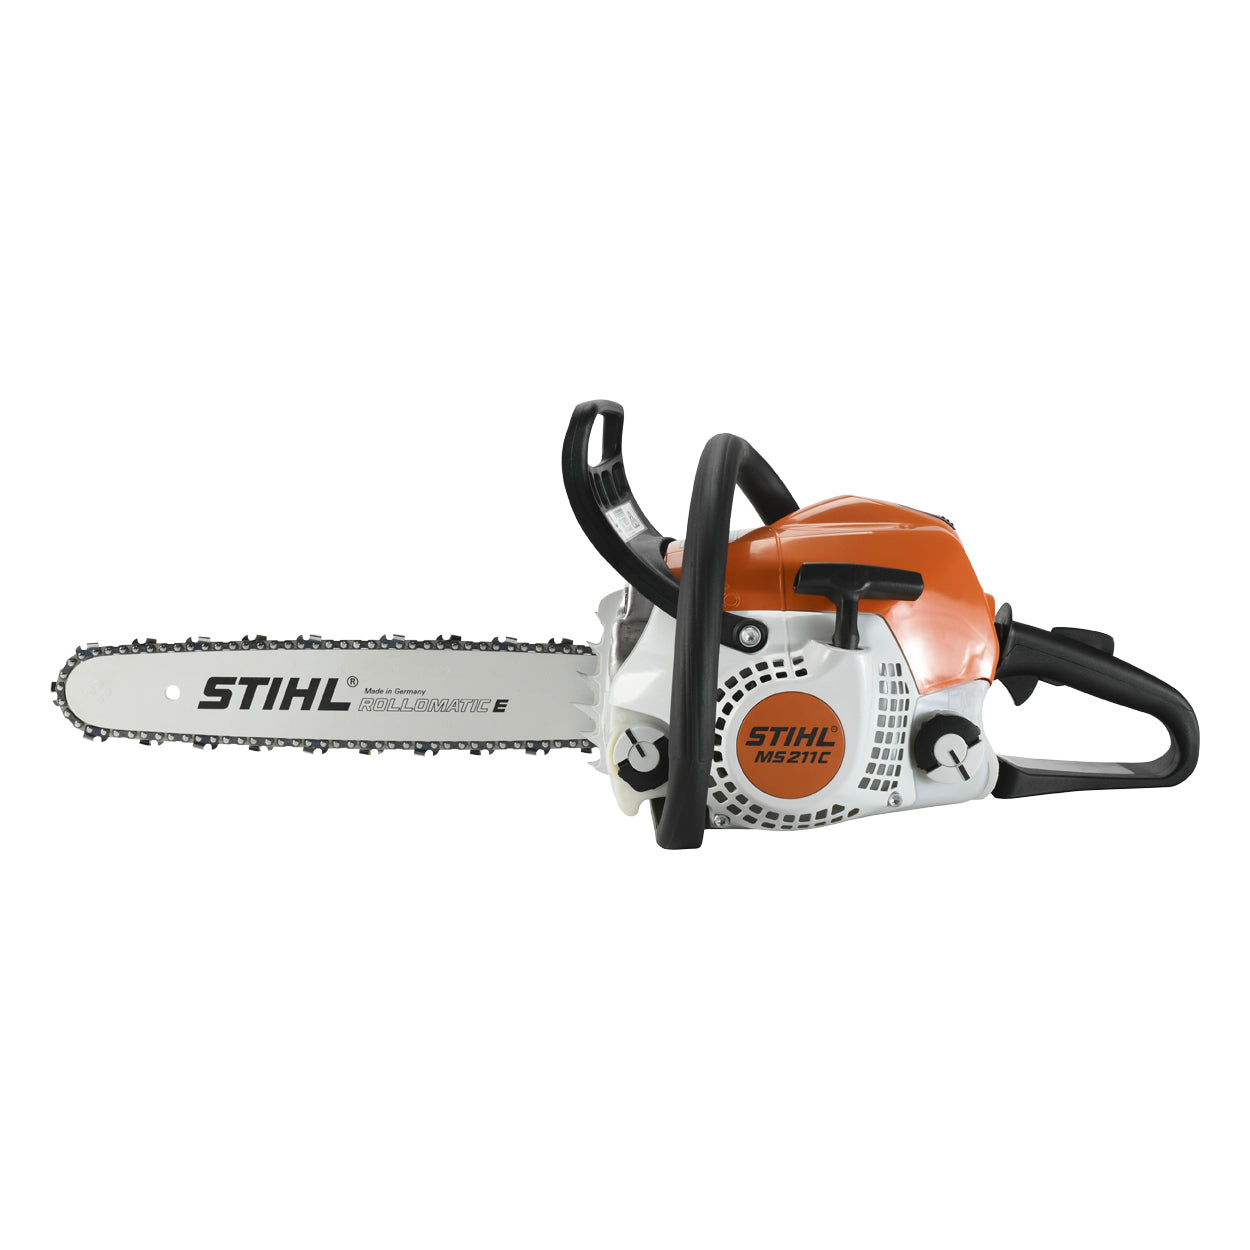 3e4196b4214 Stihl MS211C-BE Petrol Chainsaw — GYC Mower Depot